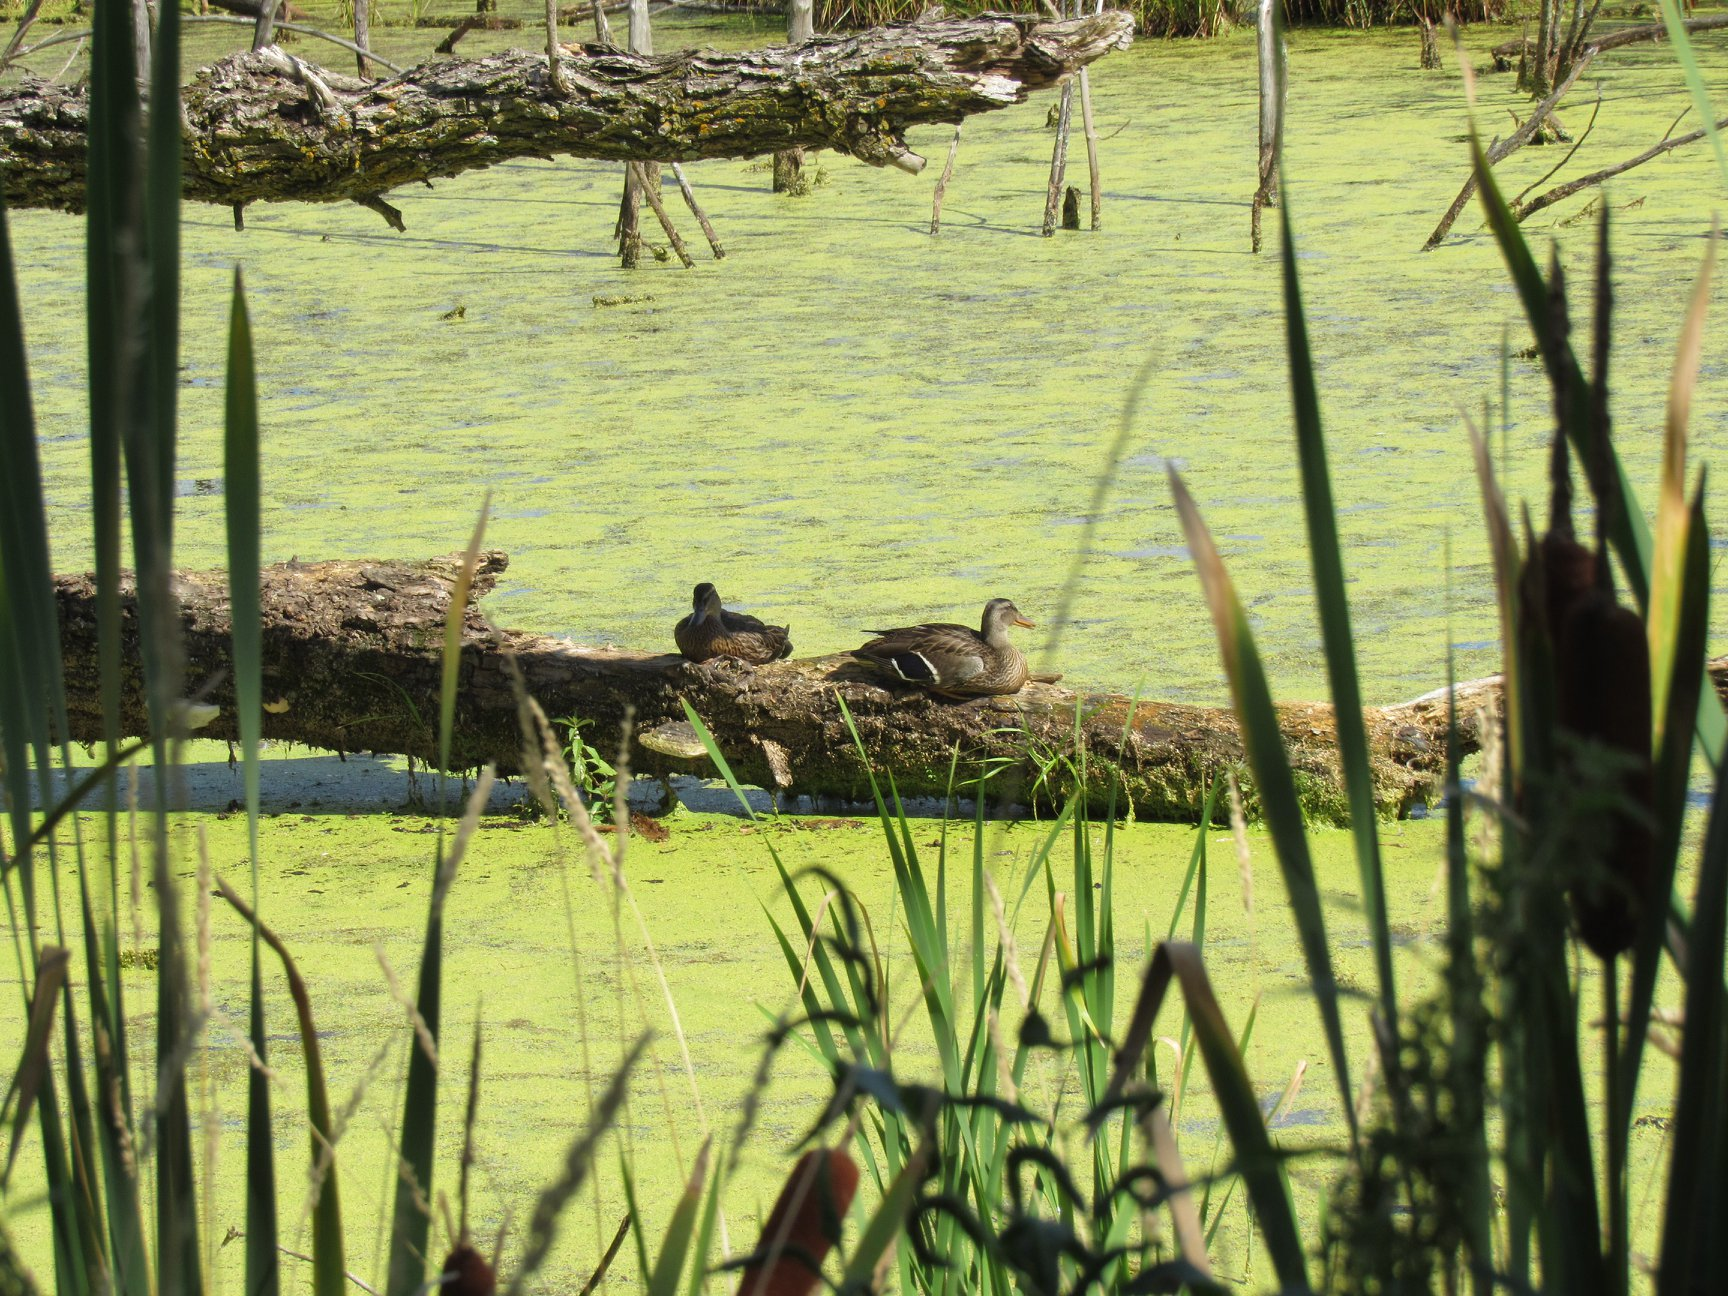 During another release we found some ducks from a past release lounging on a log in the wild area. Check out this amazing habitat!